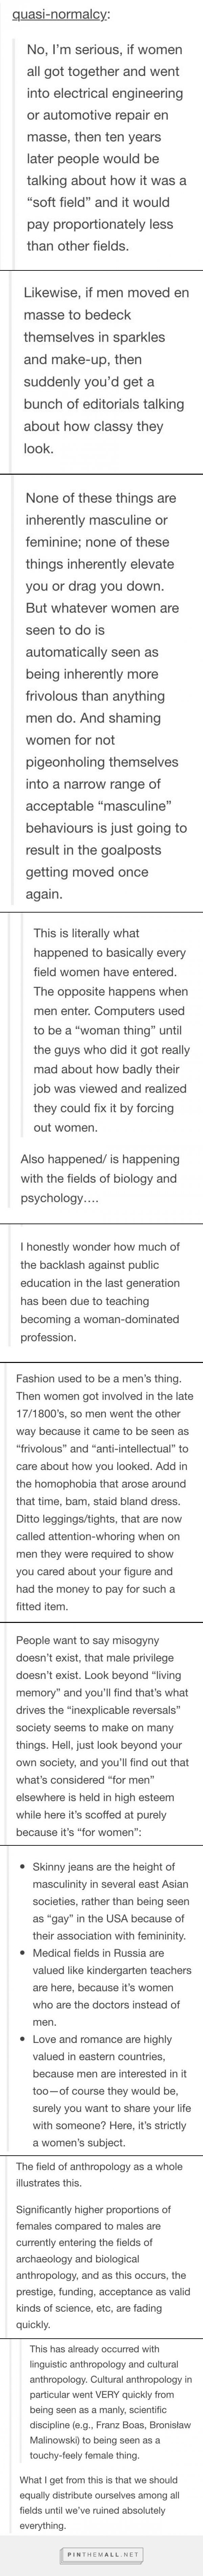 """No seriously, this is a researched thing. When women move into a field in higher numbers, the pay goes down, because we pay women less. Even the men in that field get paid less when more women move in and that's why some men ferociously claim their field is """"men only"""" and attack the women who try to work with them. Most likely if higher numbers of men moved into a """"female"""" field, the pay would go up. (explanation continues in comment section)"""